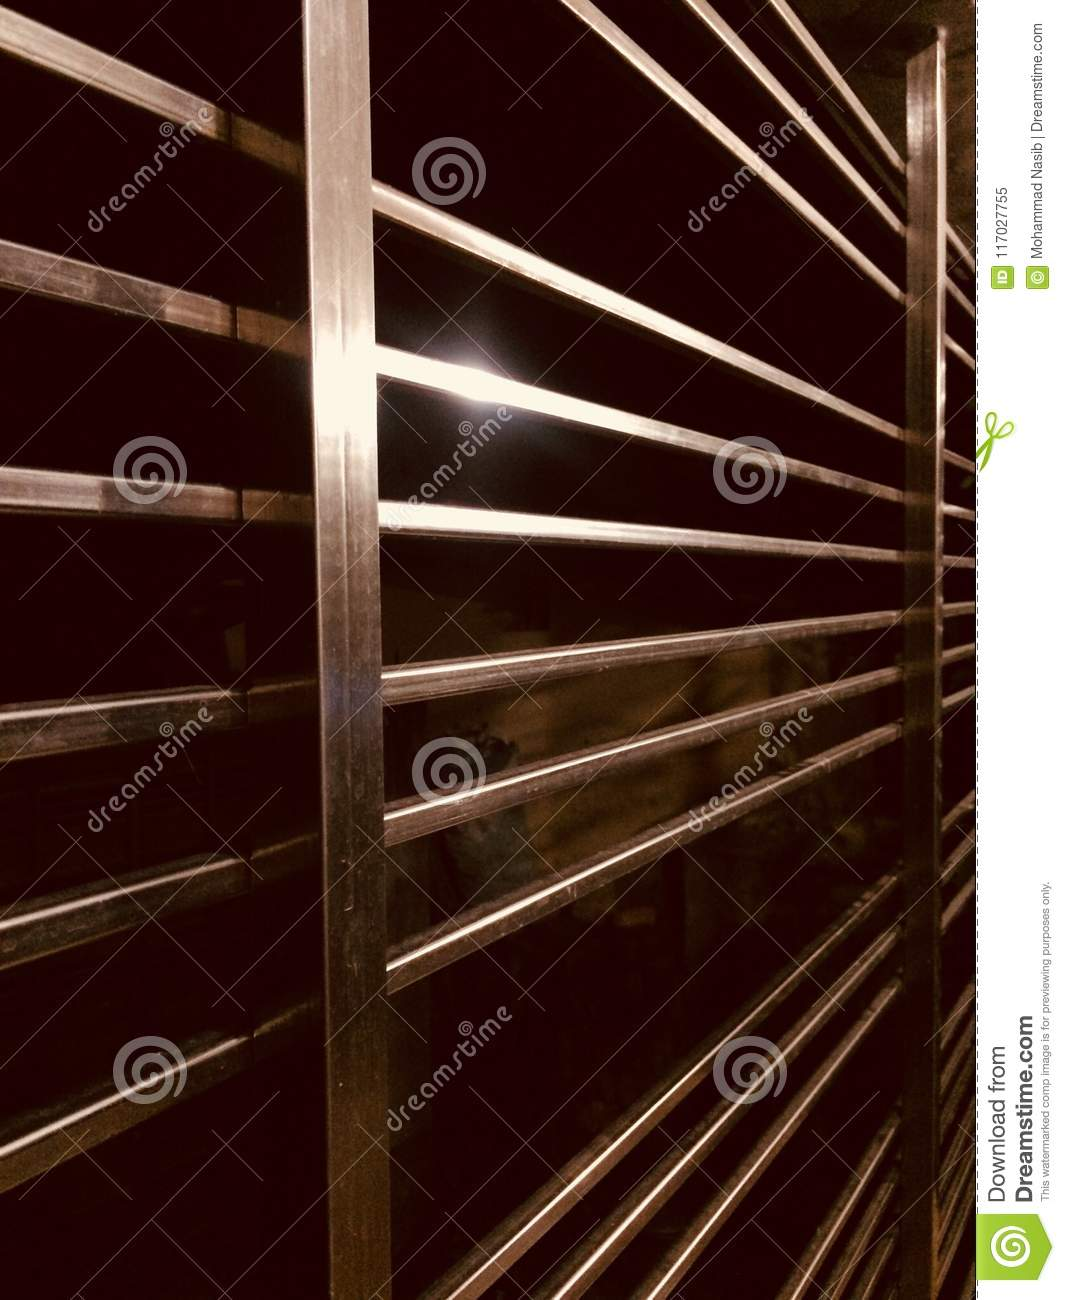 Download Stylish Metallic Interior Protection Grill Object Photograph Stock Image - Image of idea, wall: 117027755